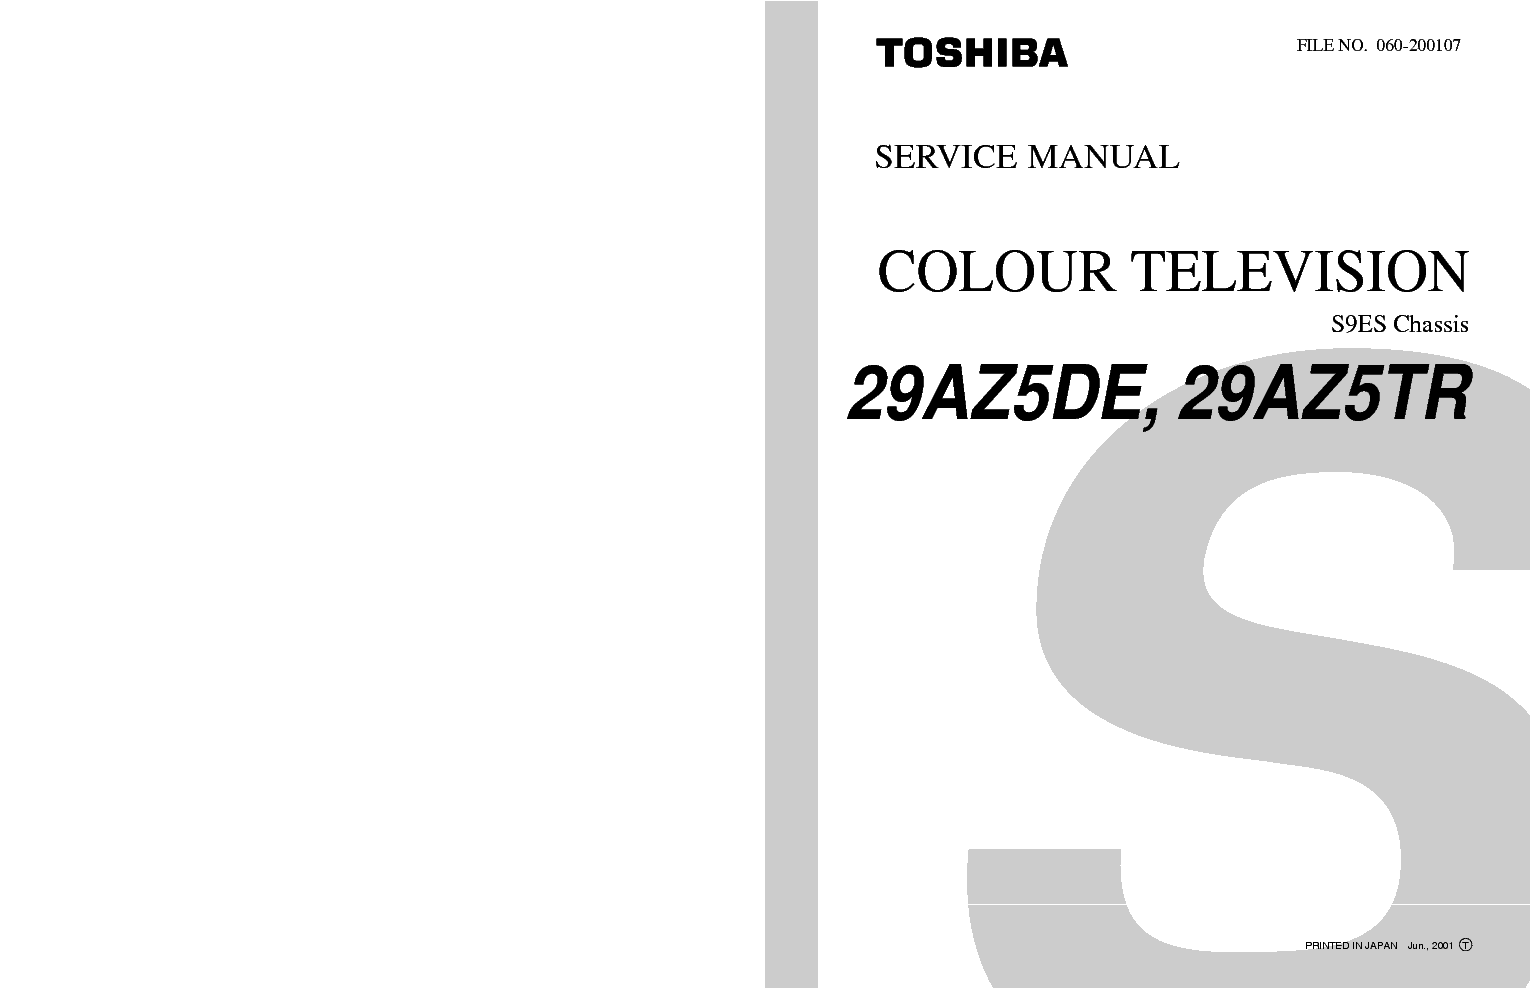 TOSHIBA S9ES CHASSIS 29AZ5DE TV SM Service Manual download